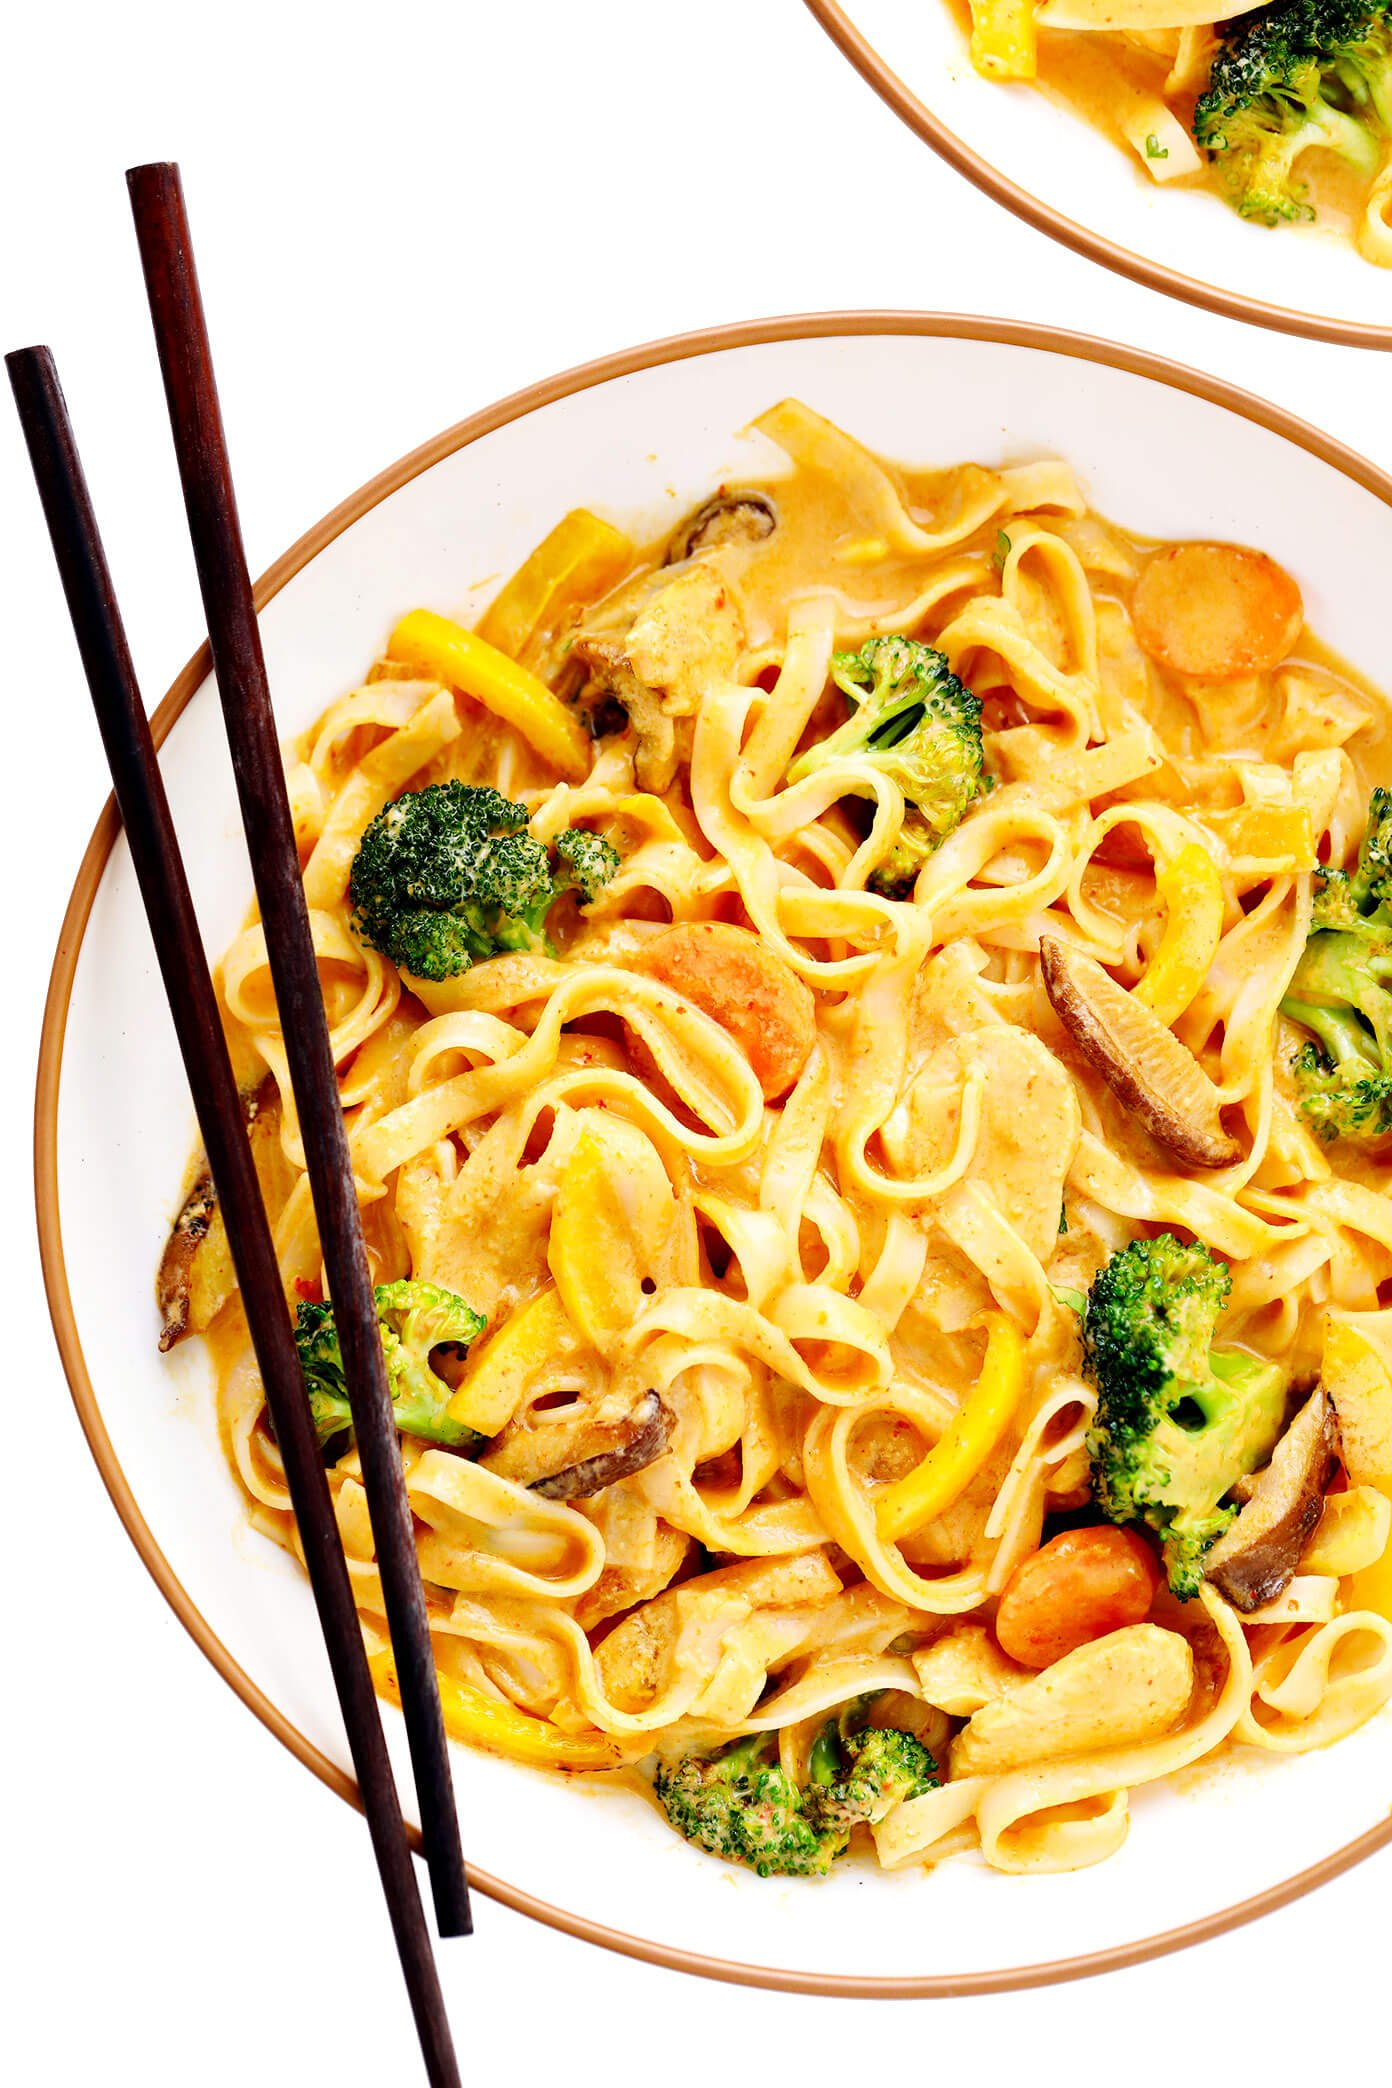 Saucy Thai Curried Peanut Noodles in Bowl with Chicken